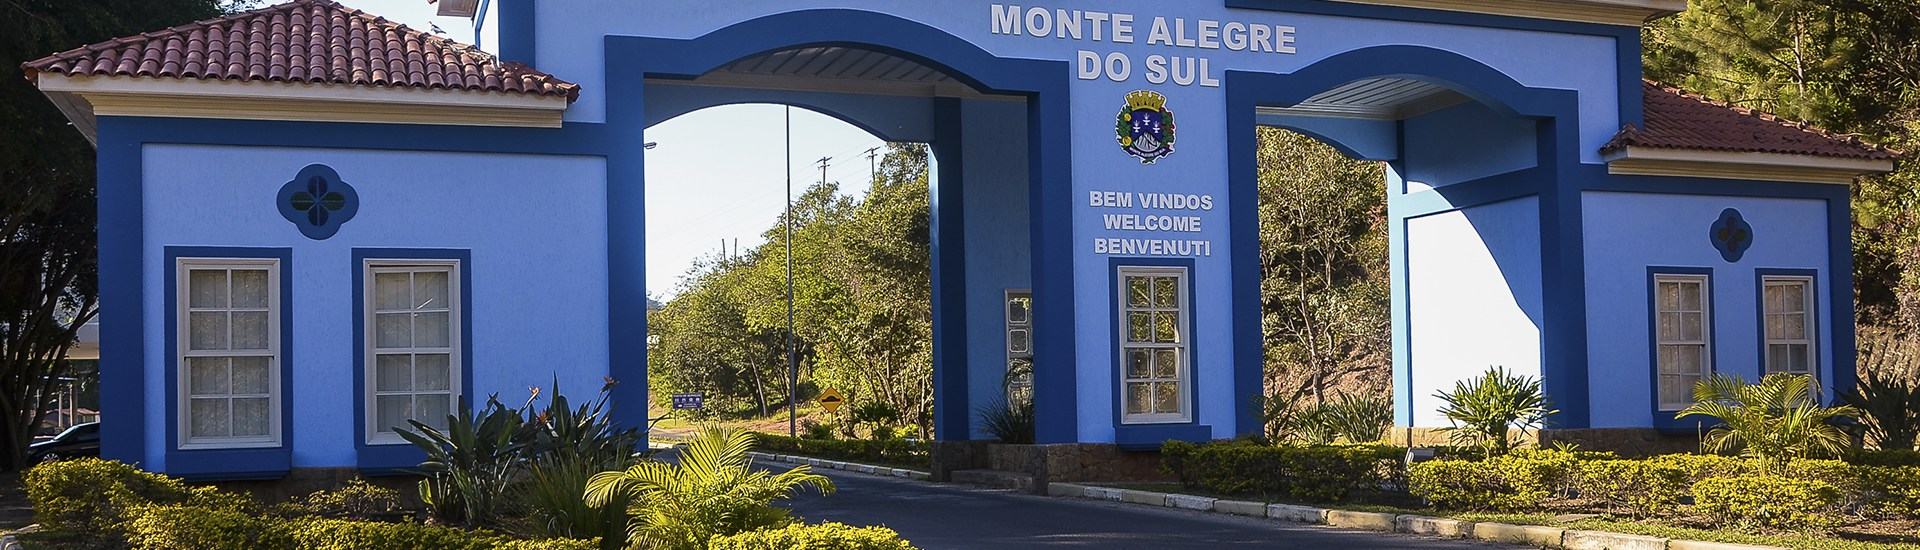 Monte Alegre do Sul